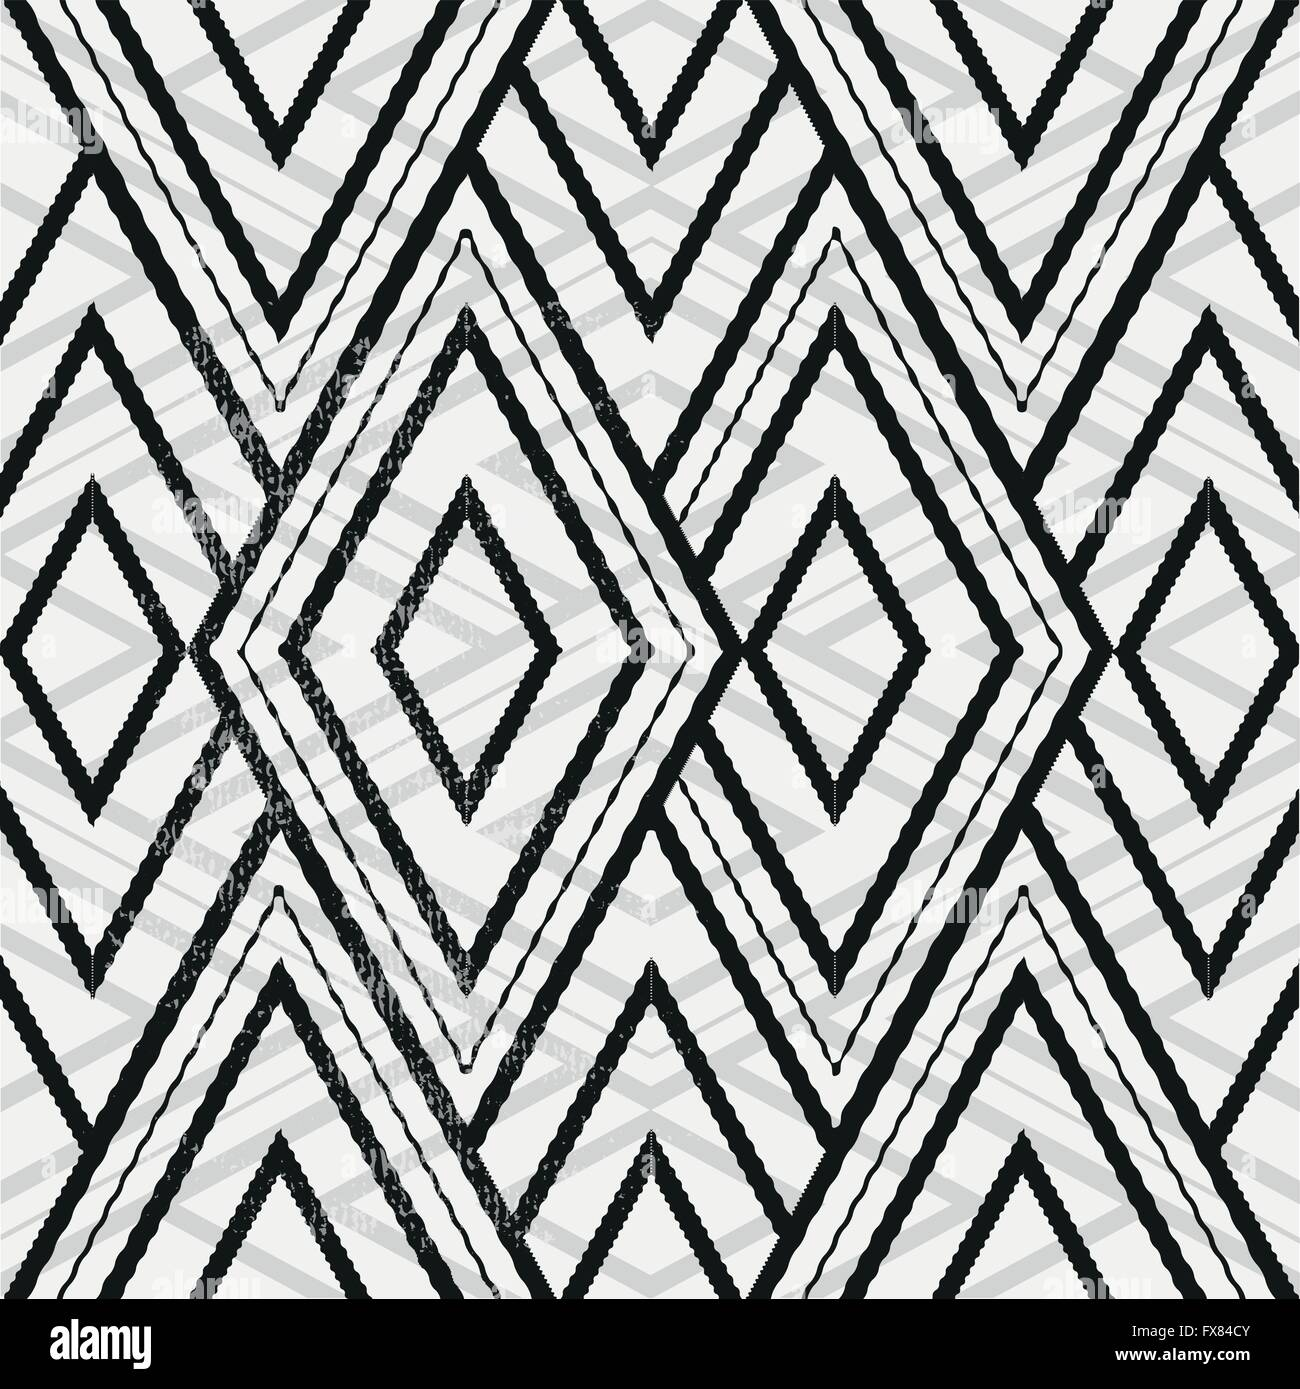 Abstract Background Pattern. Abstract background design. Vector illustration. - Stock Image